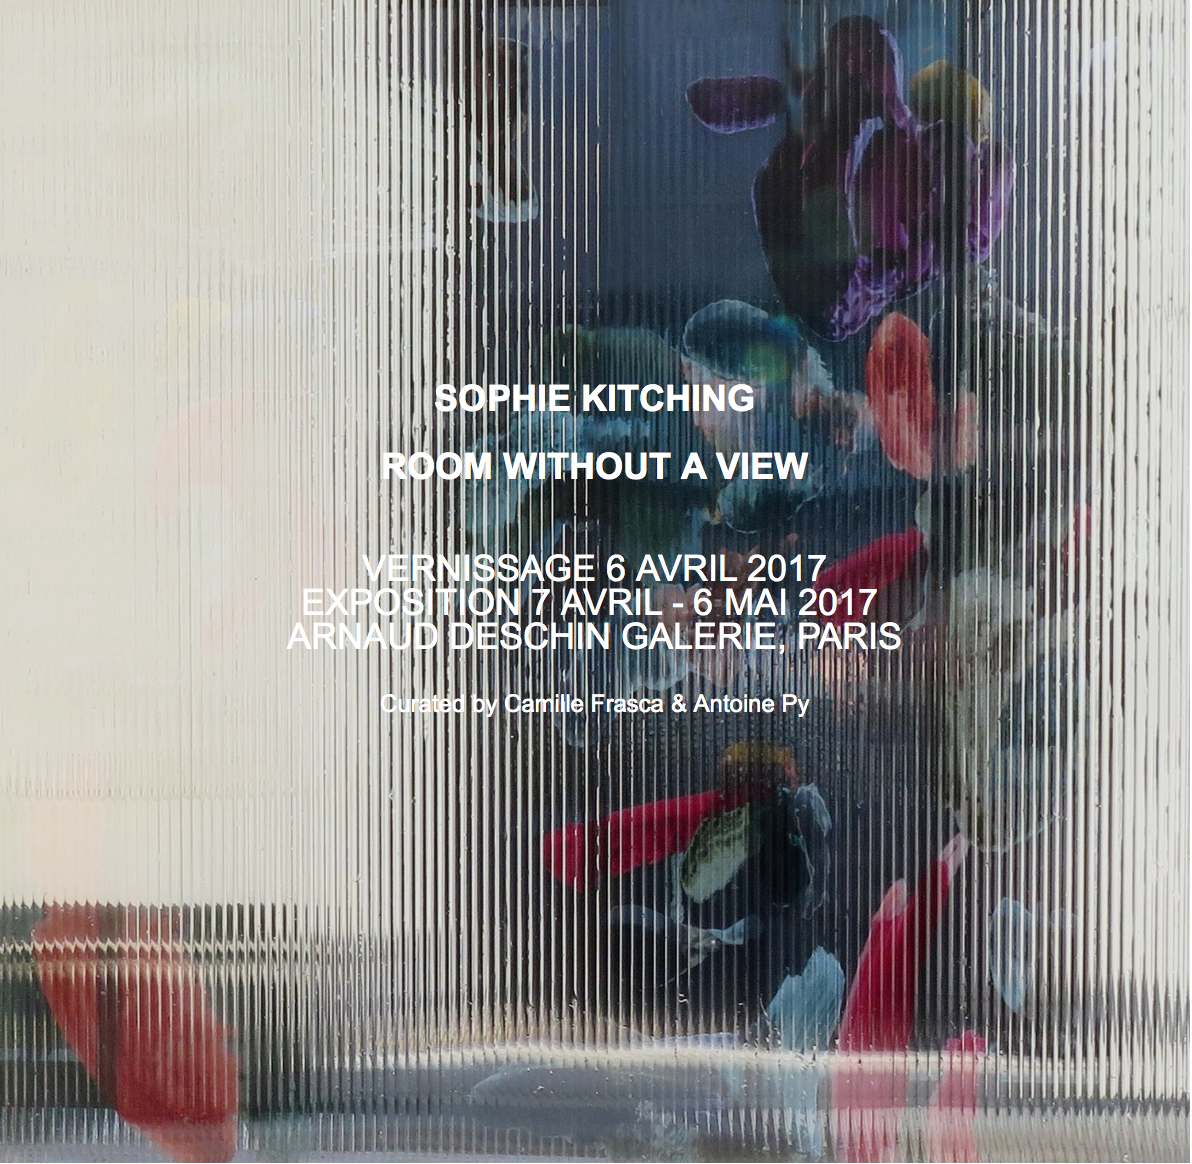 Opening April 6. 2017, 6pm-9pm   Exhibition on view April 7 - May 6 2017  Arnaud Deschin Galerie 16-18 rue des Cascades, 75020 Paris Open Wed-Sat 2pm-8pm ; Sun 2pm-7pm and by appointment